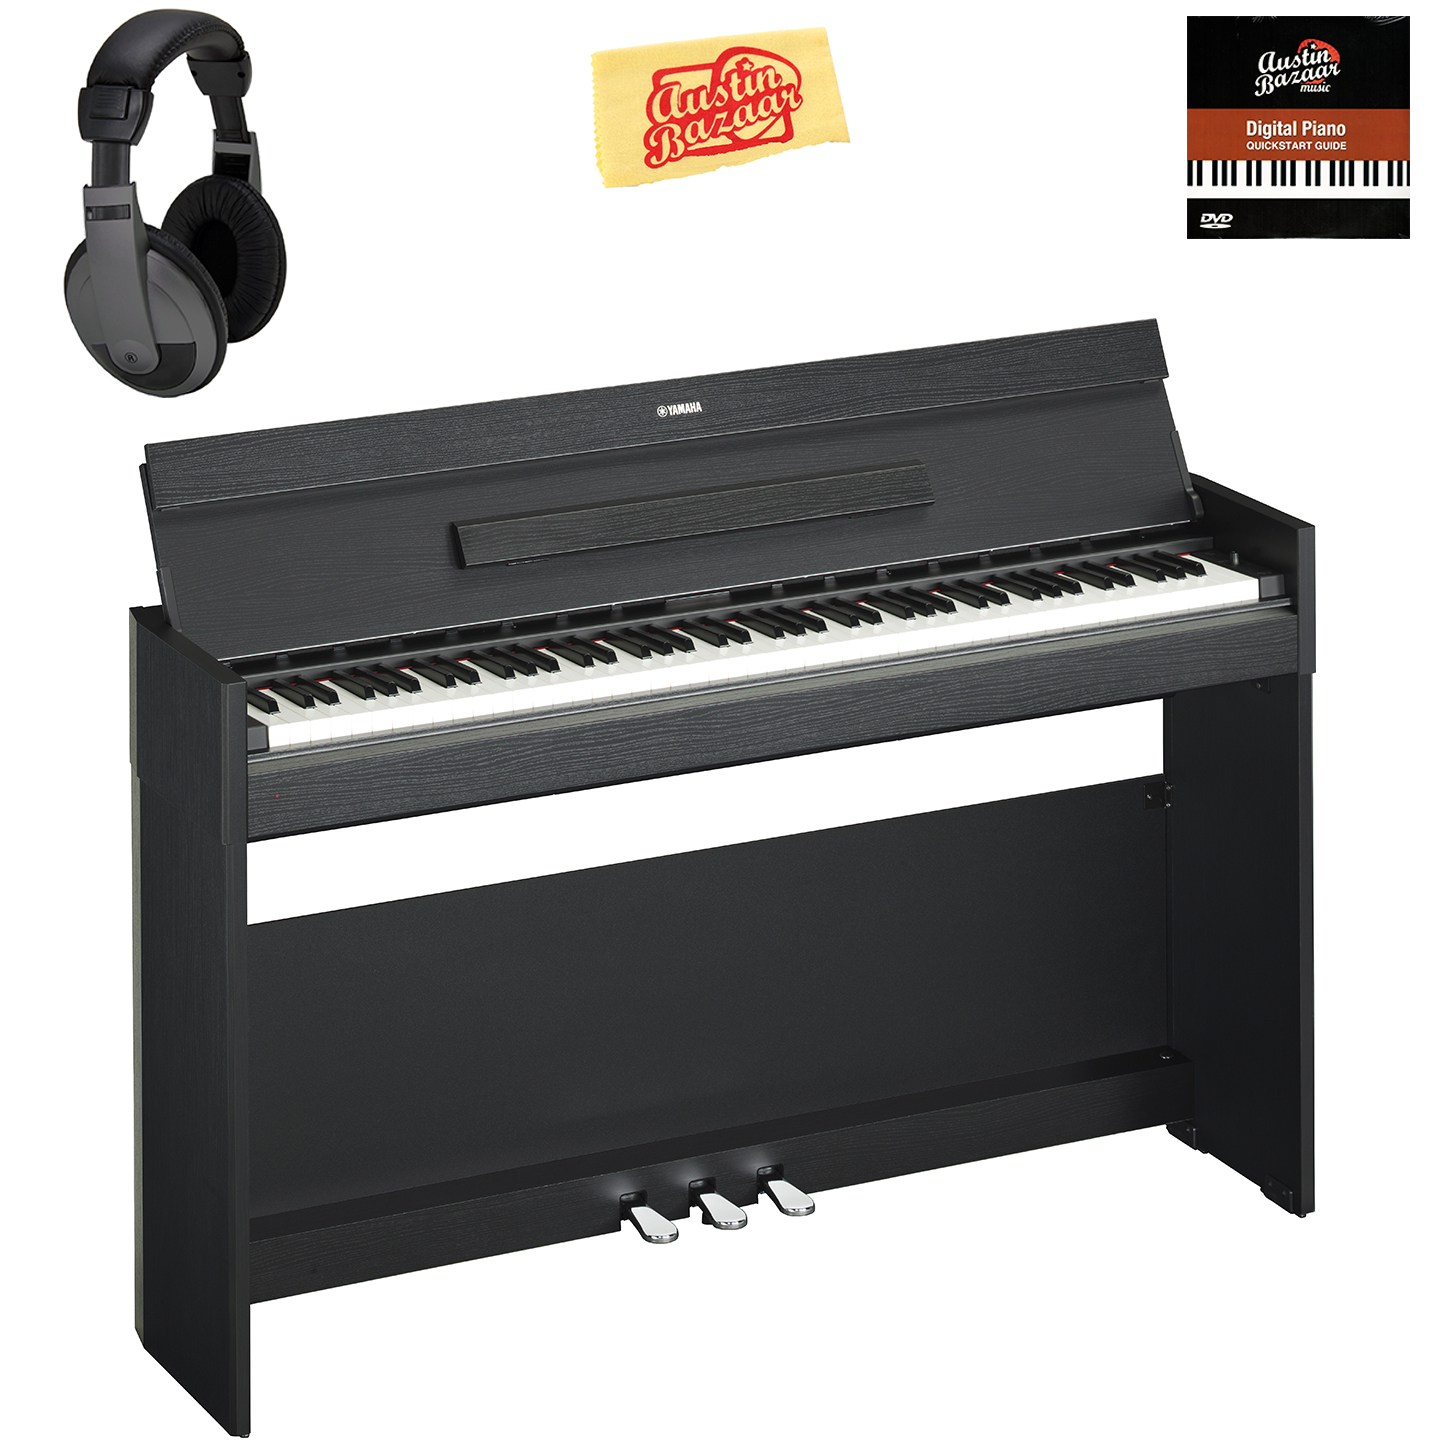 yamaha ydp s52b arius console digital piano black w. Black Bedroom Furniture Sets. Home Design Ideas